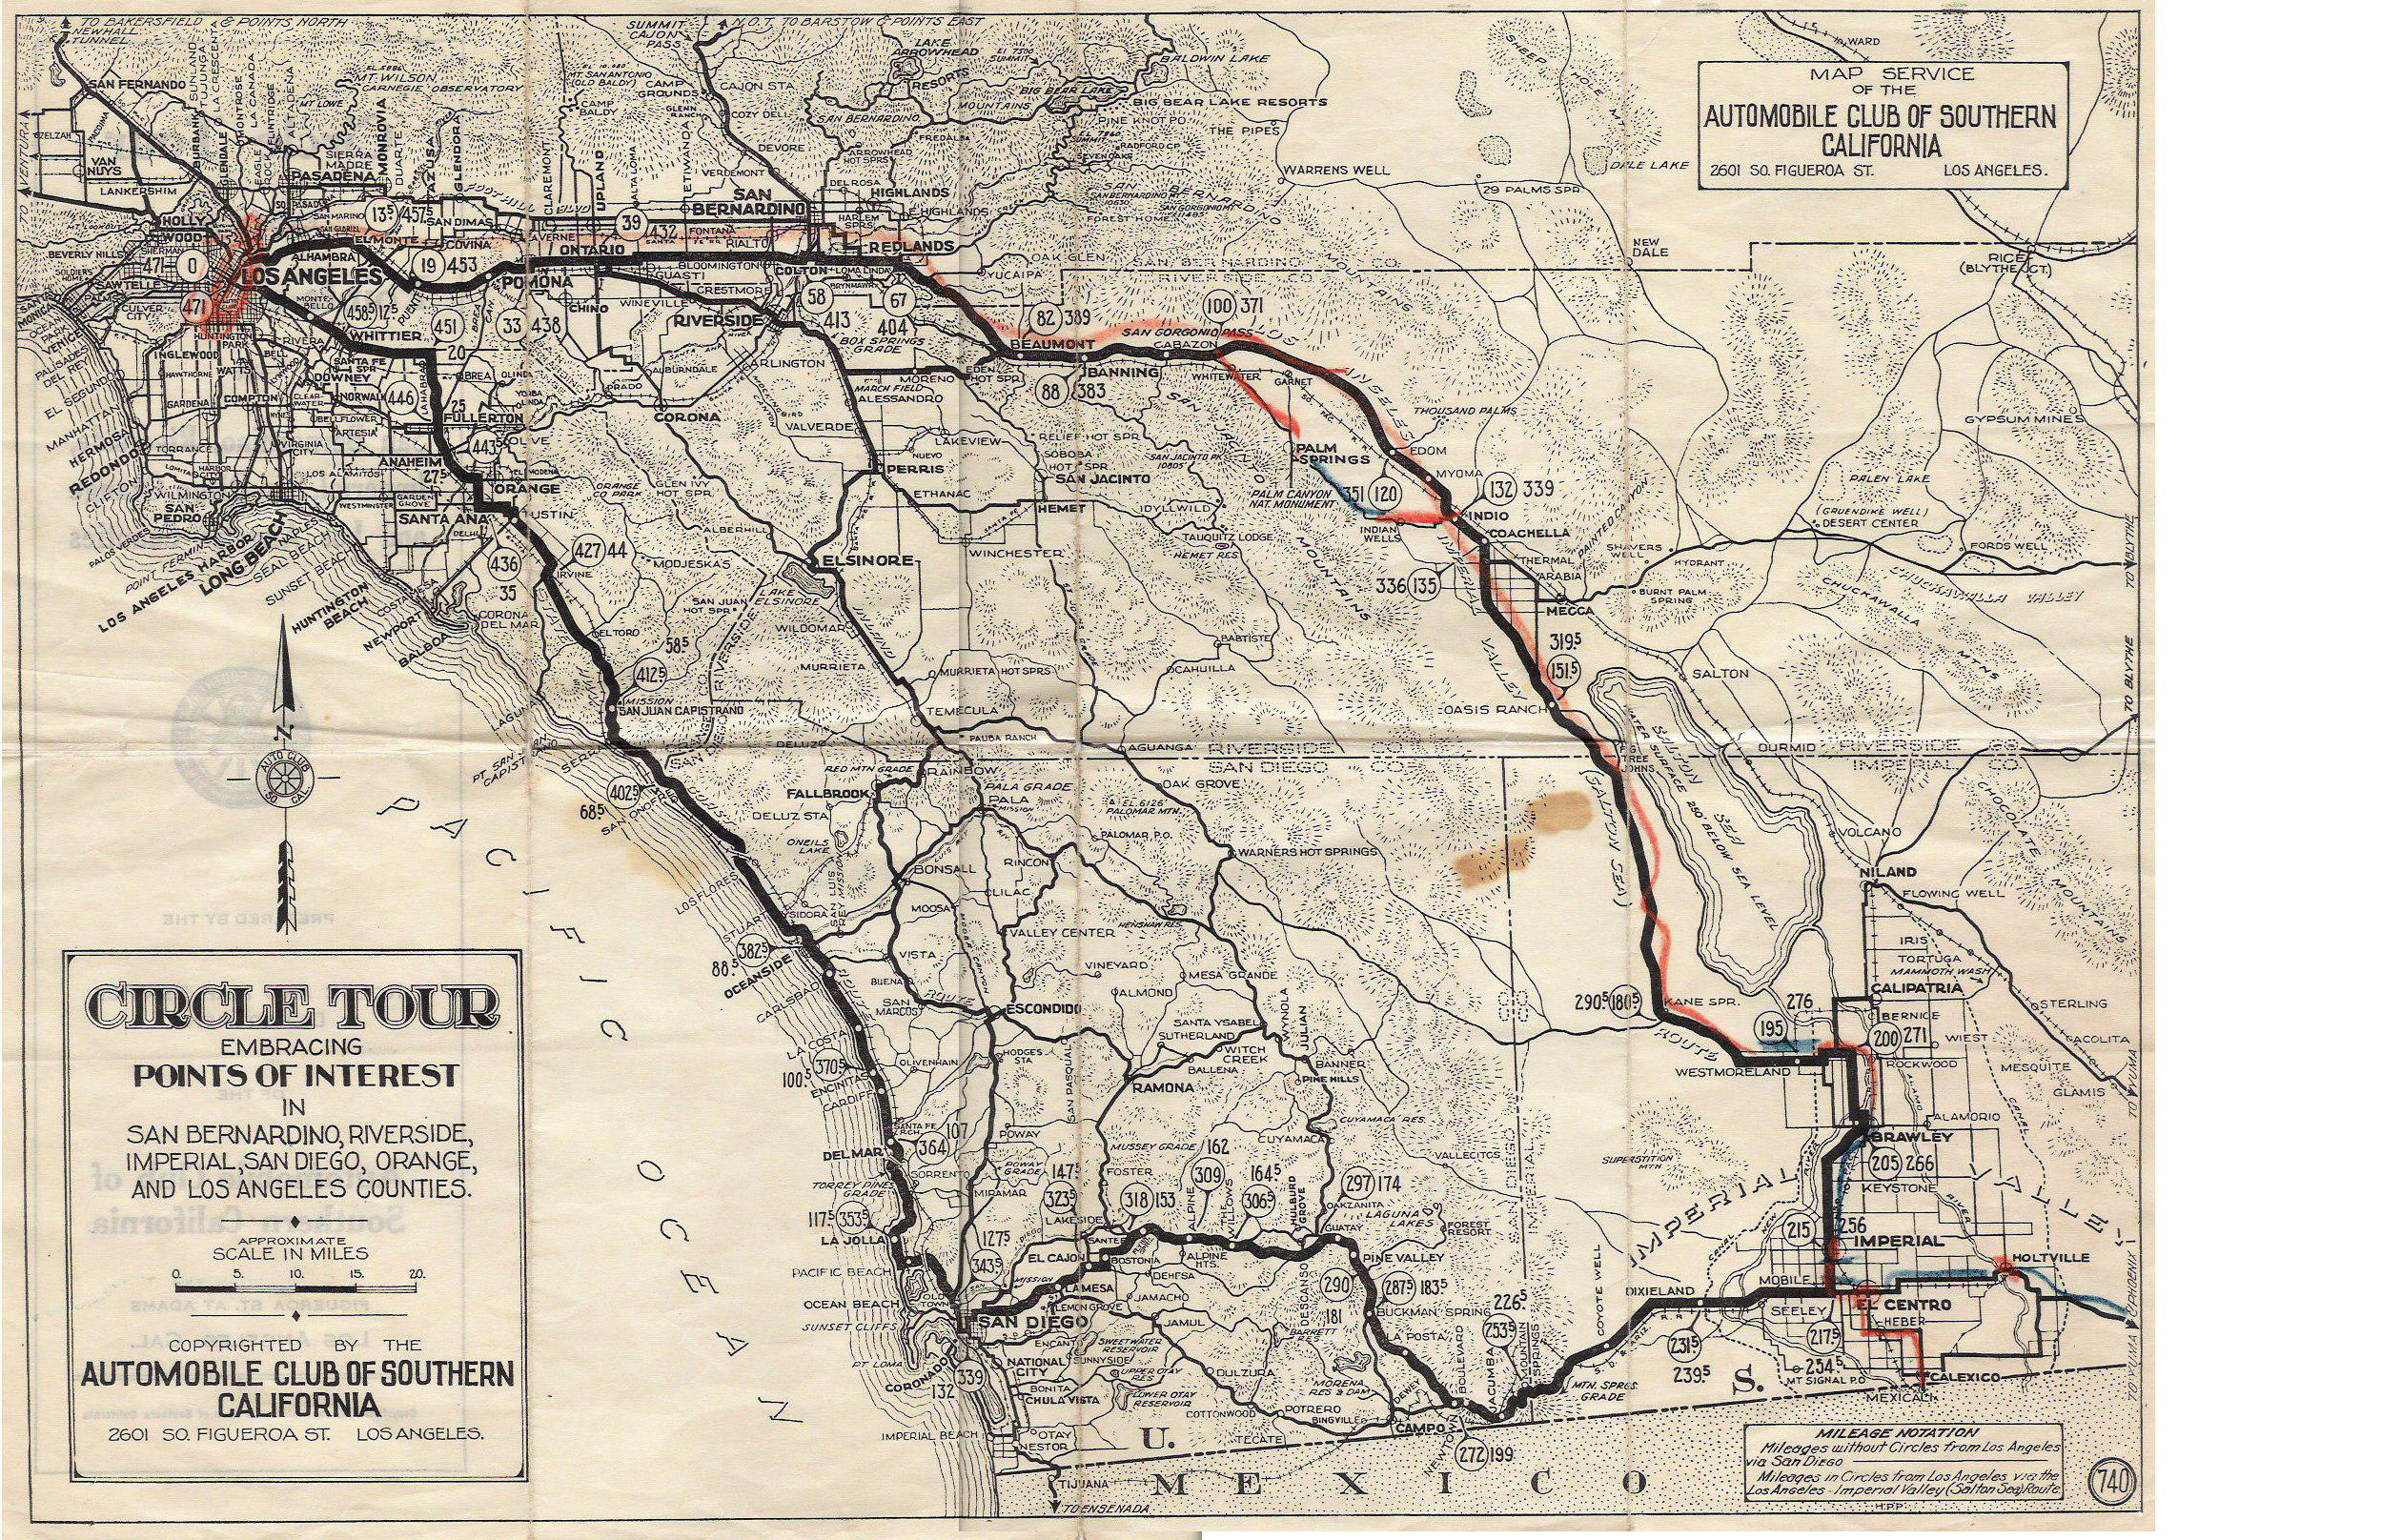 U.S. 395 - San Diego Original & Final Routes